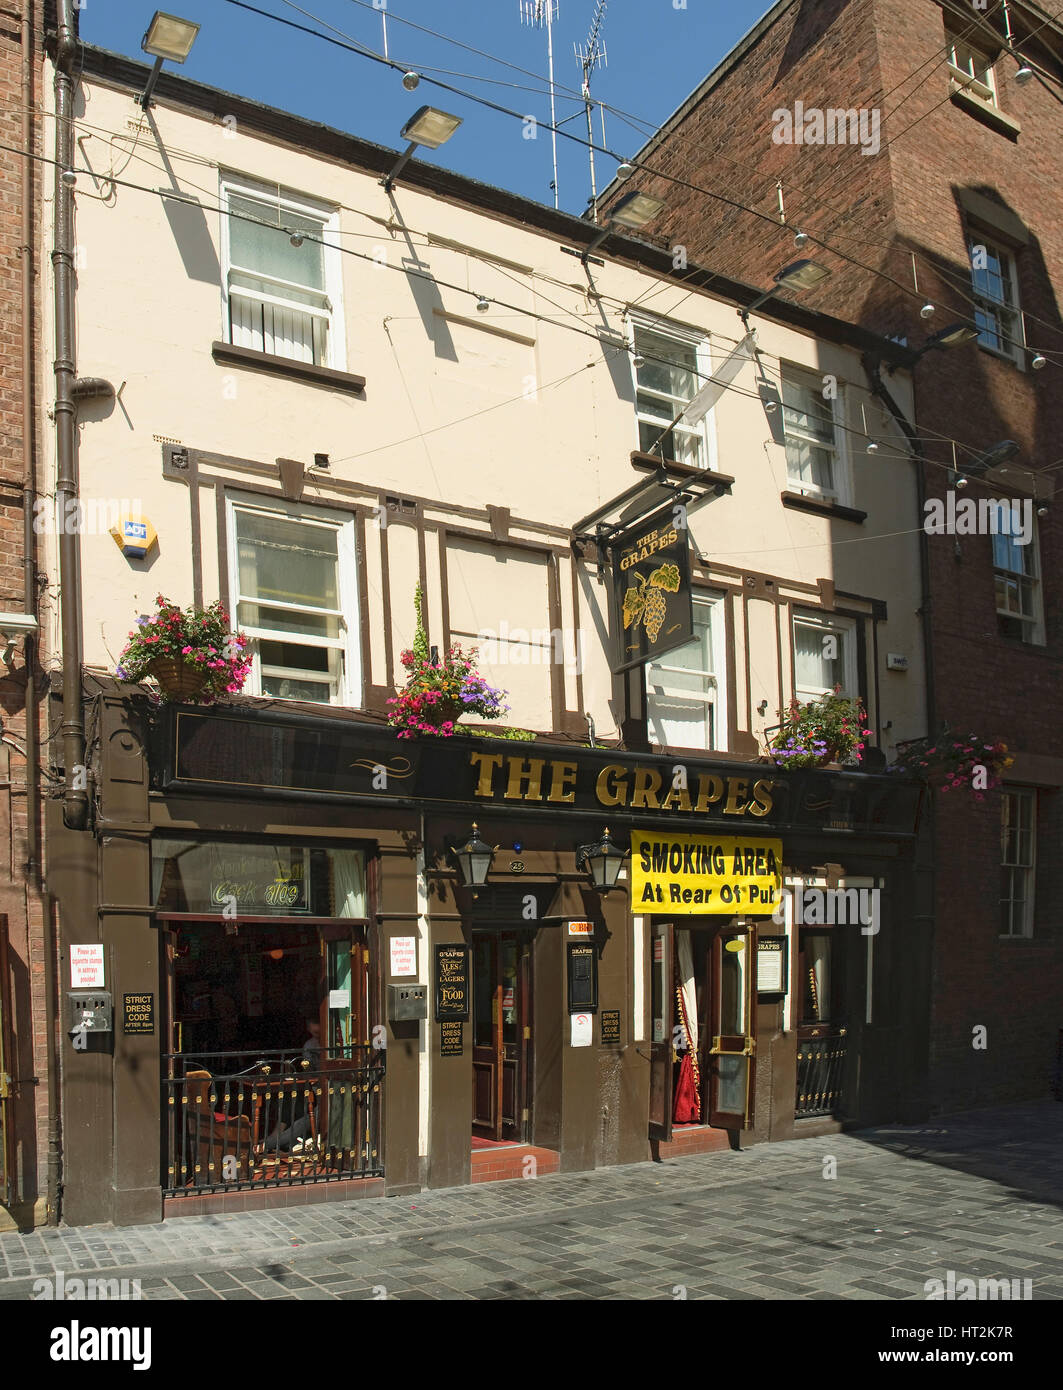 The Grapes pub in Mathew Street Liverpool. - Stock Image